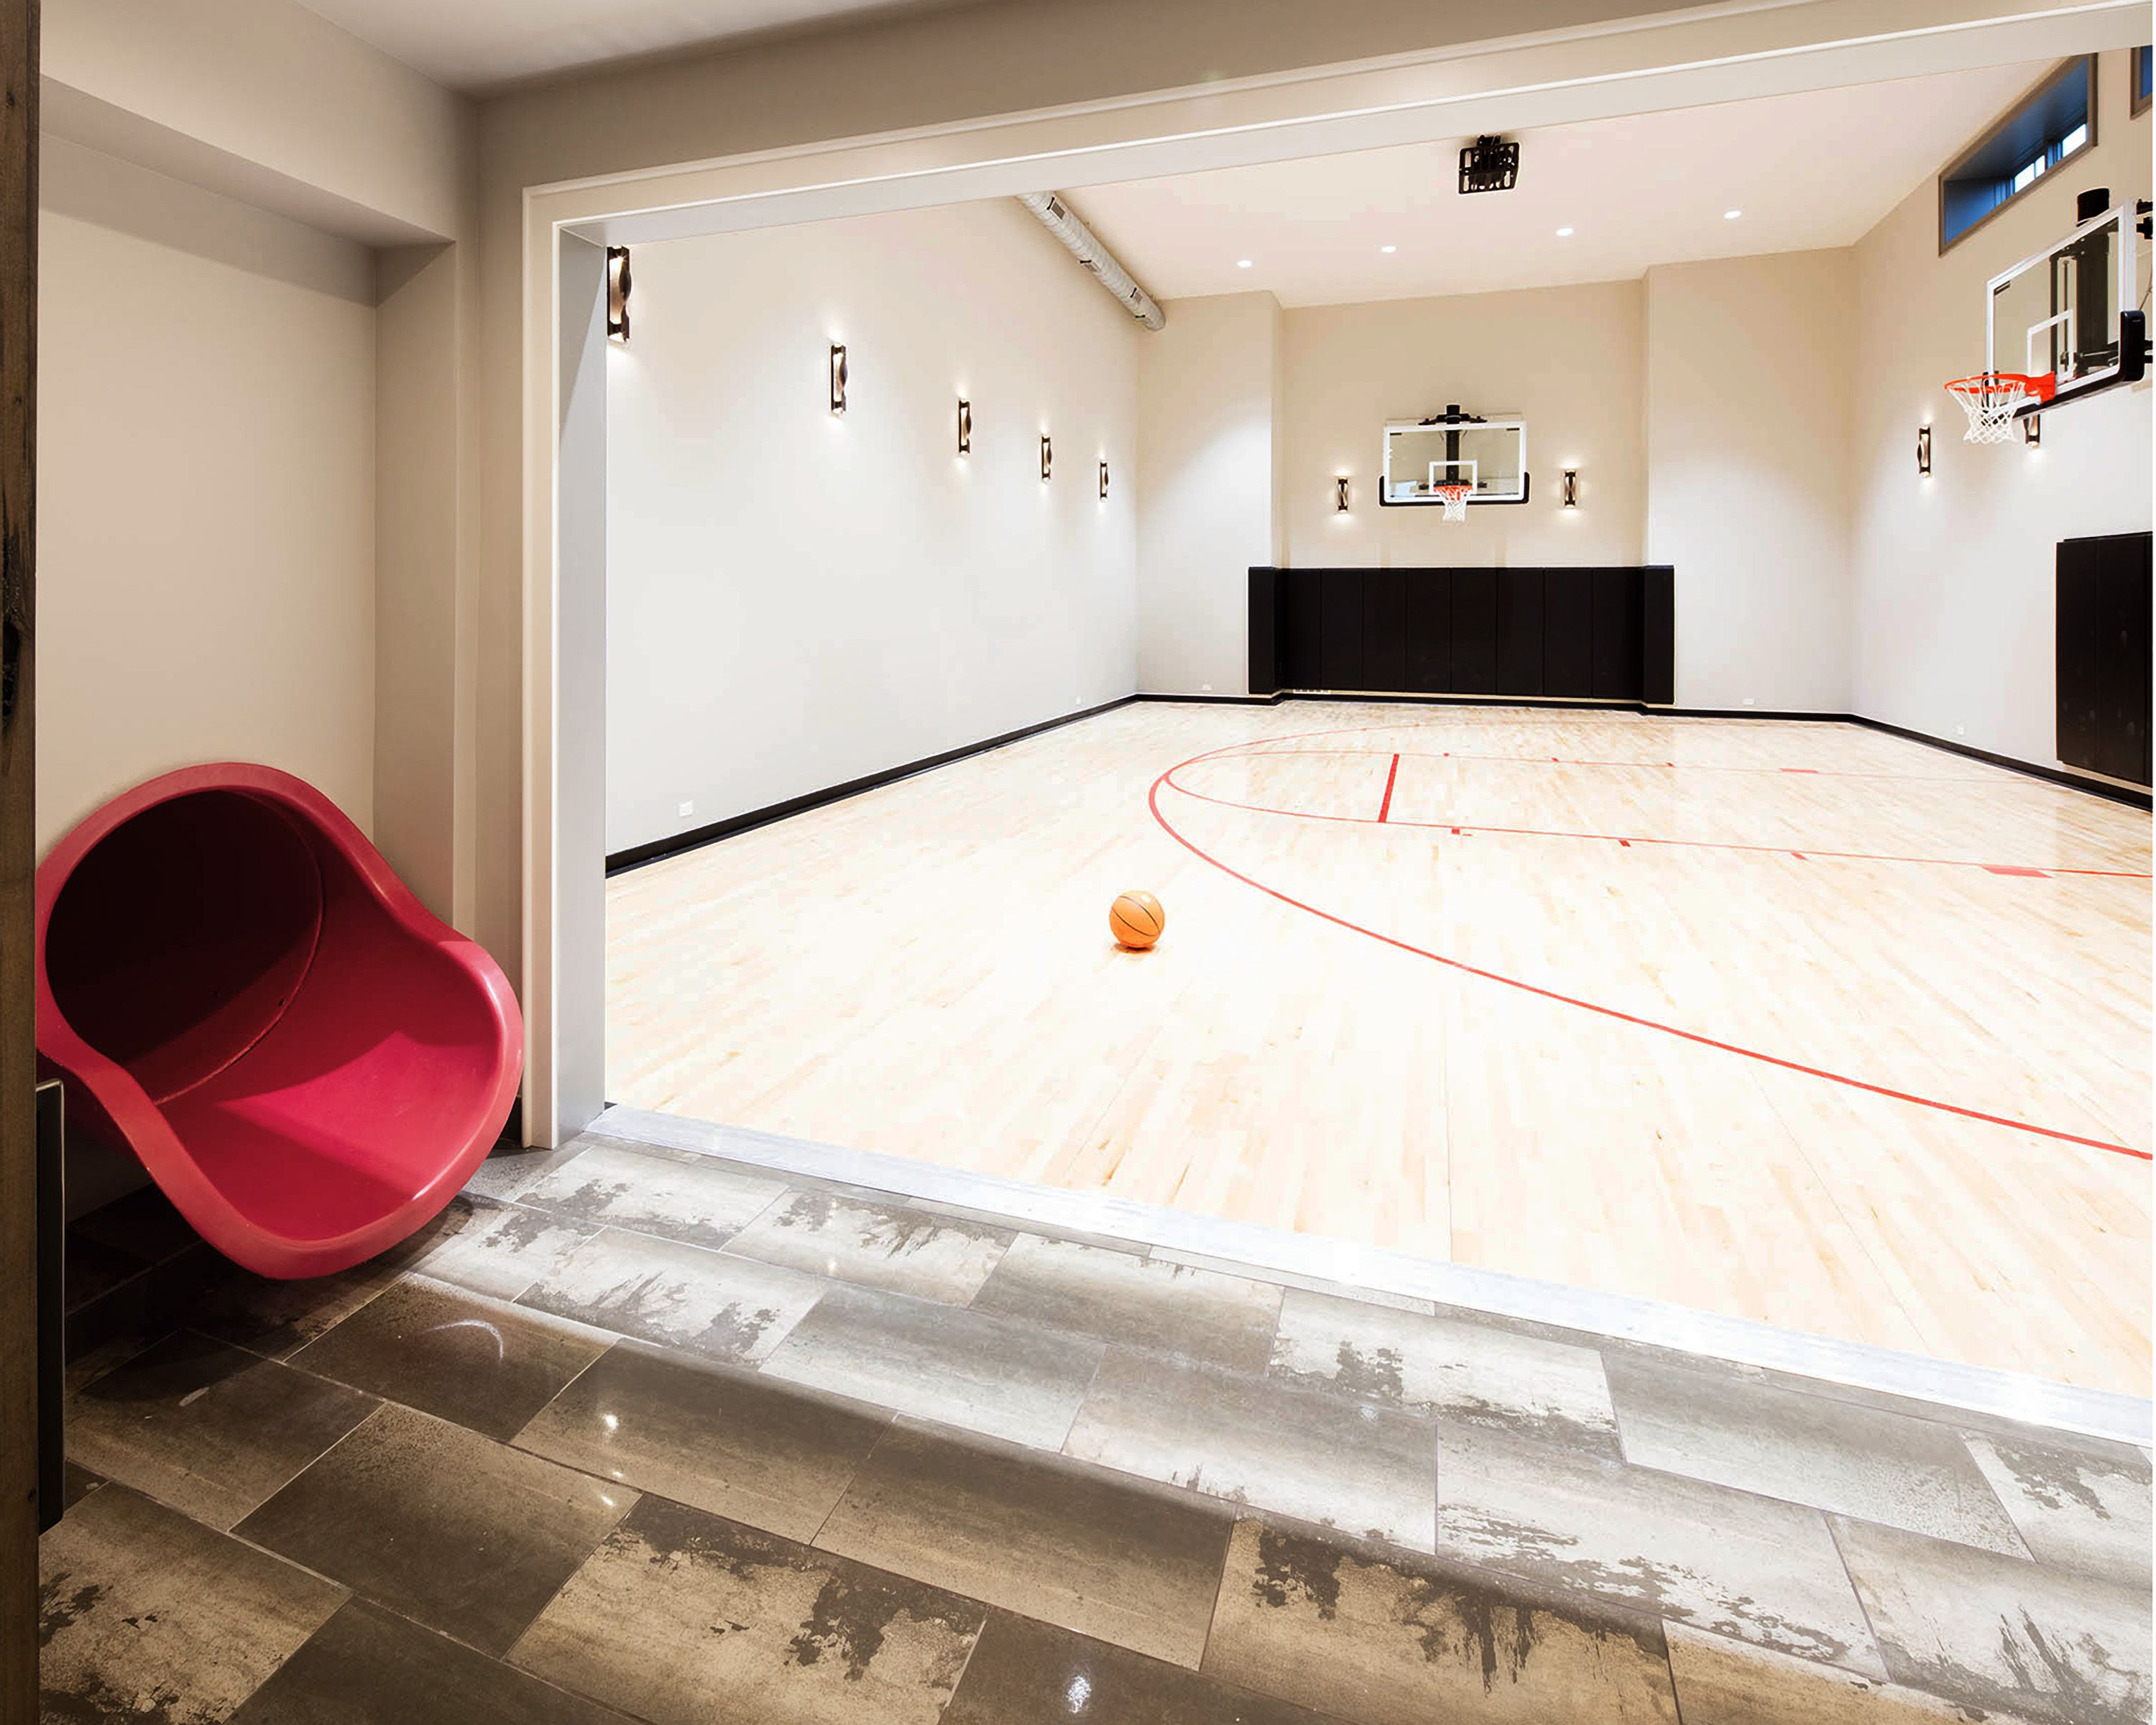 Home basketball court with slide | Bedroom and House Ideas ...